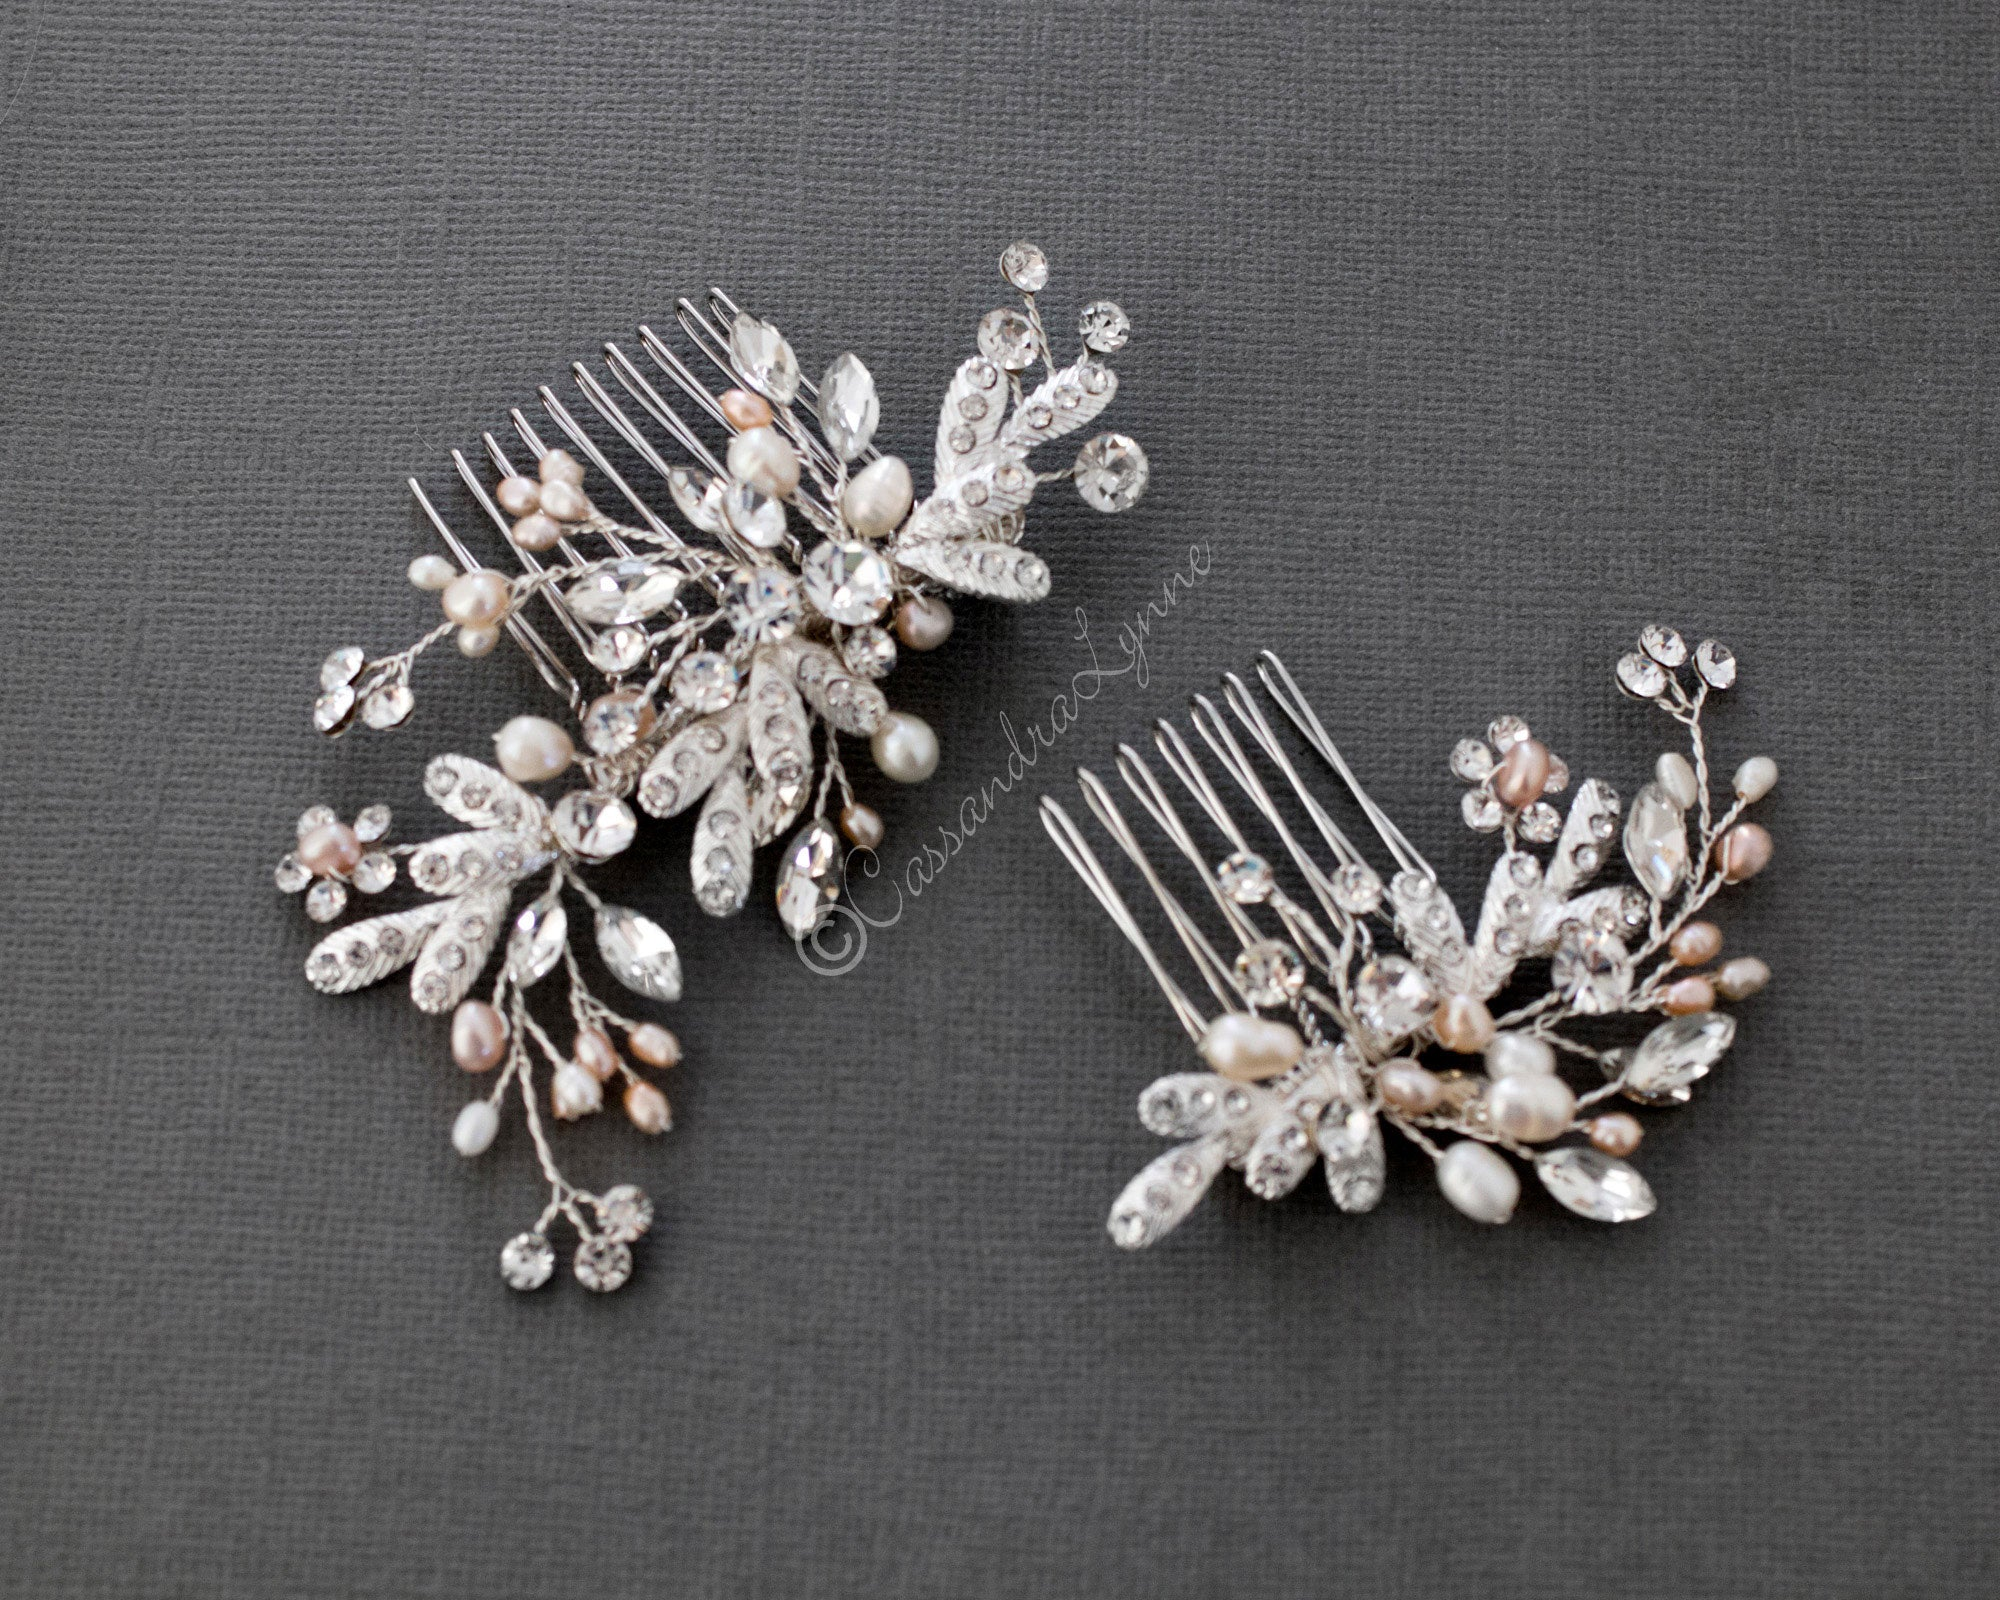 Wedding Comb Set with Blush Freshwater Pearls